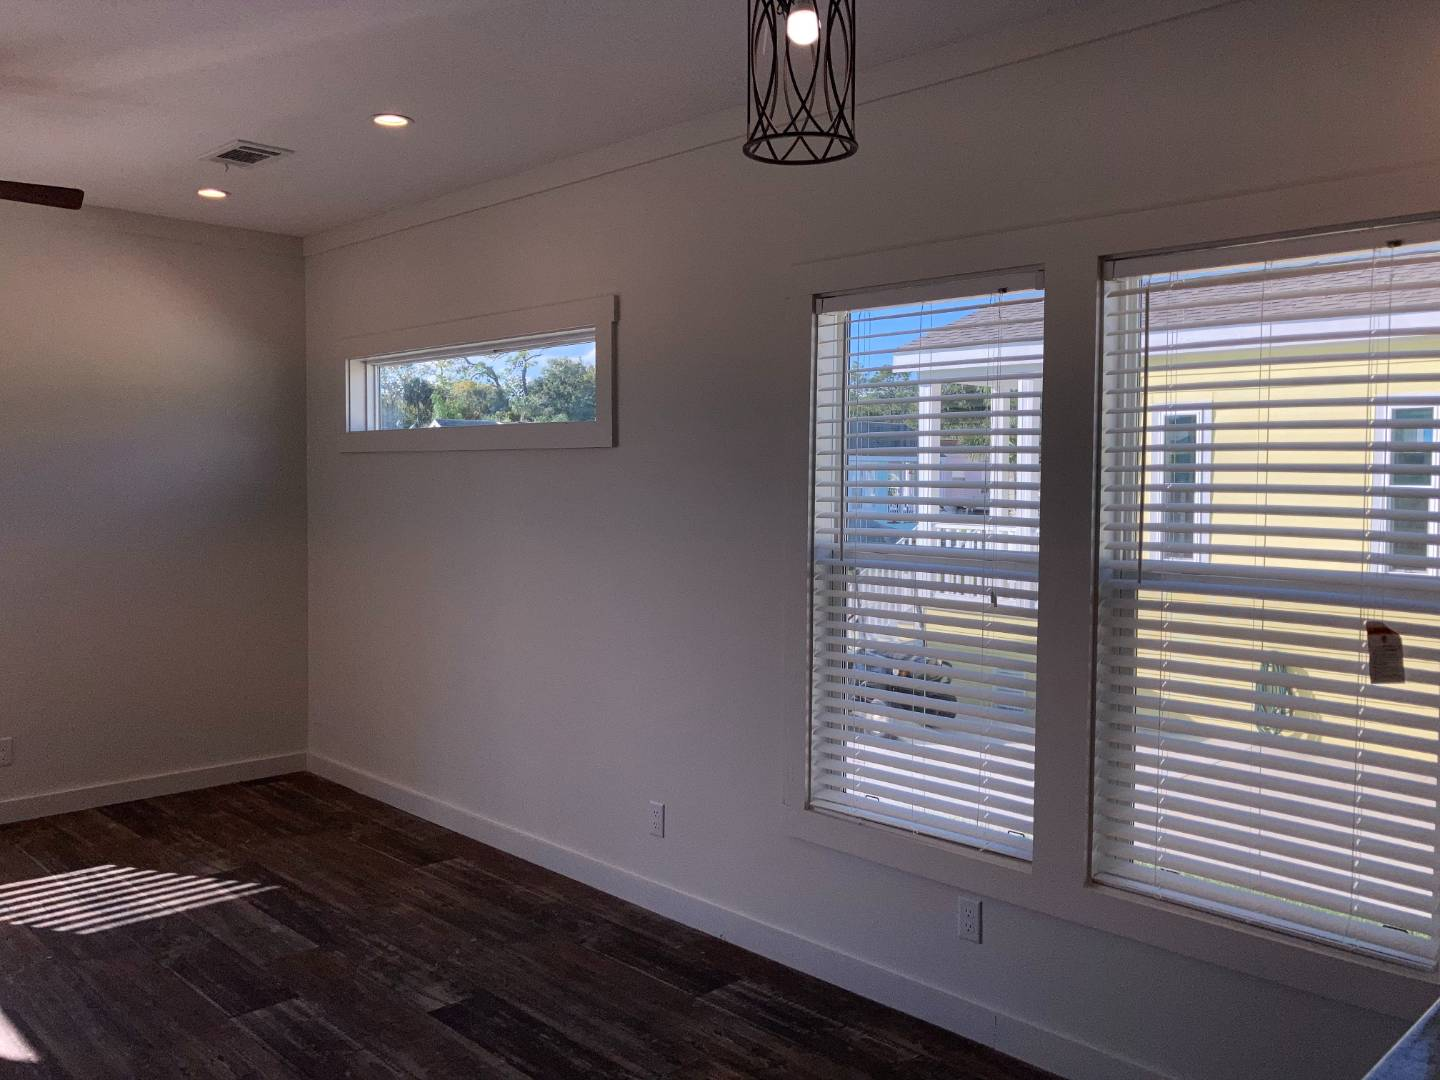 2650 Holiday Trail, KISSIMMEE, Florida 34746, 1 Bedroom Bedrooms, ,1 BathroomBathrooms,Other,For Sale,2650 Holiday Trail,10965744